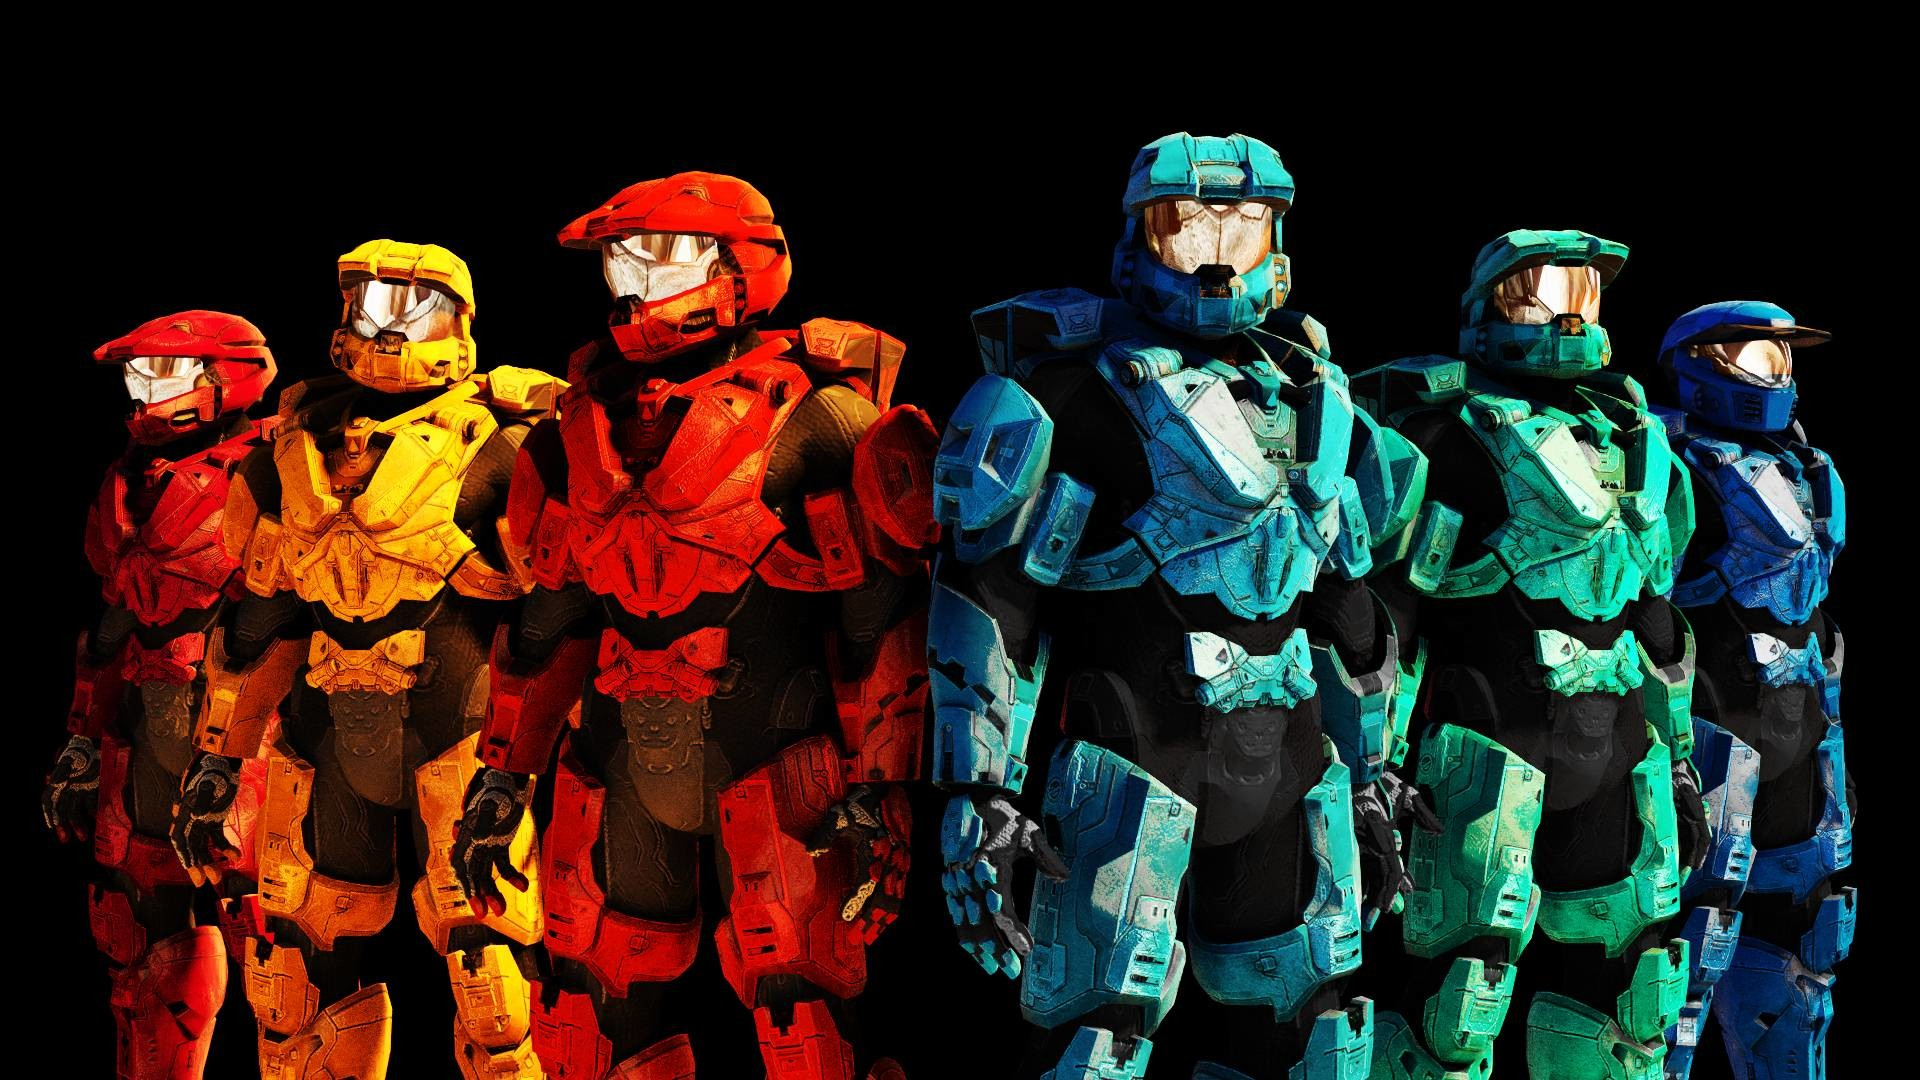 Red vs Blue Season 17: Release Date And All We Know So Far